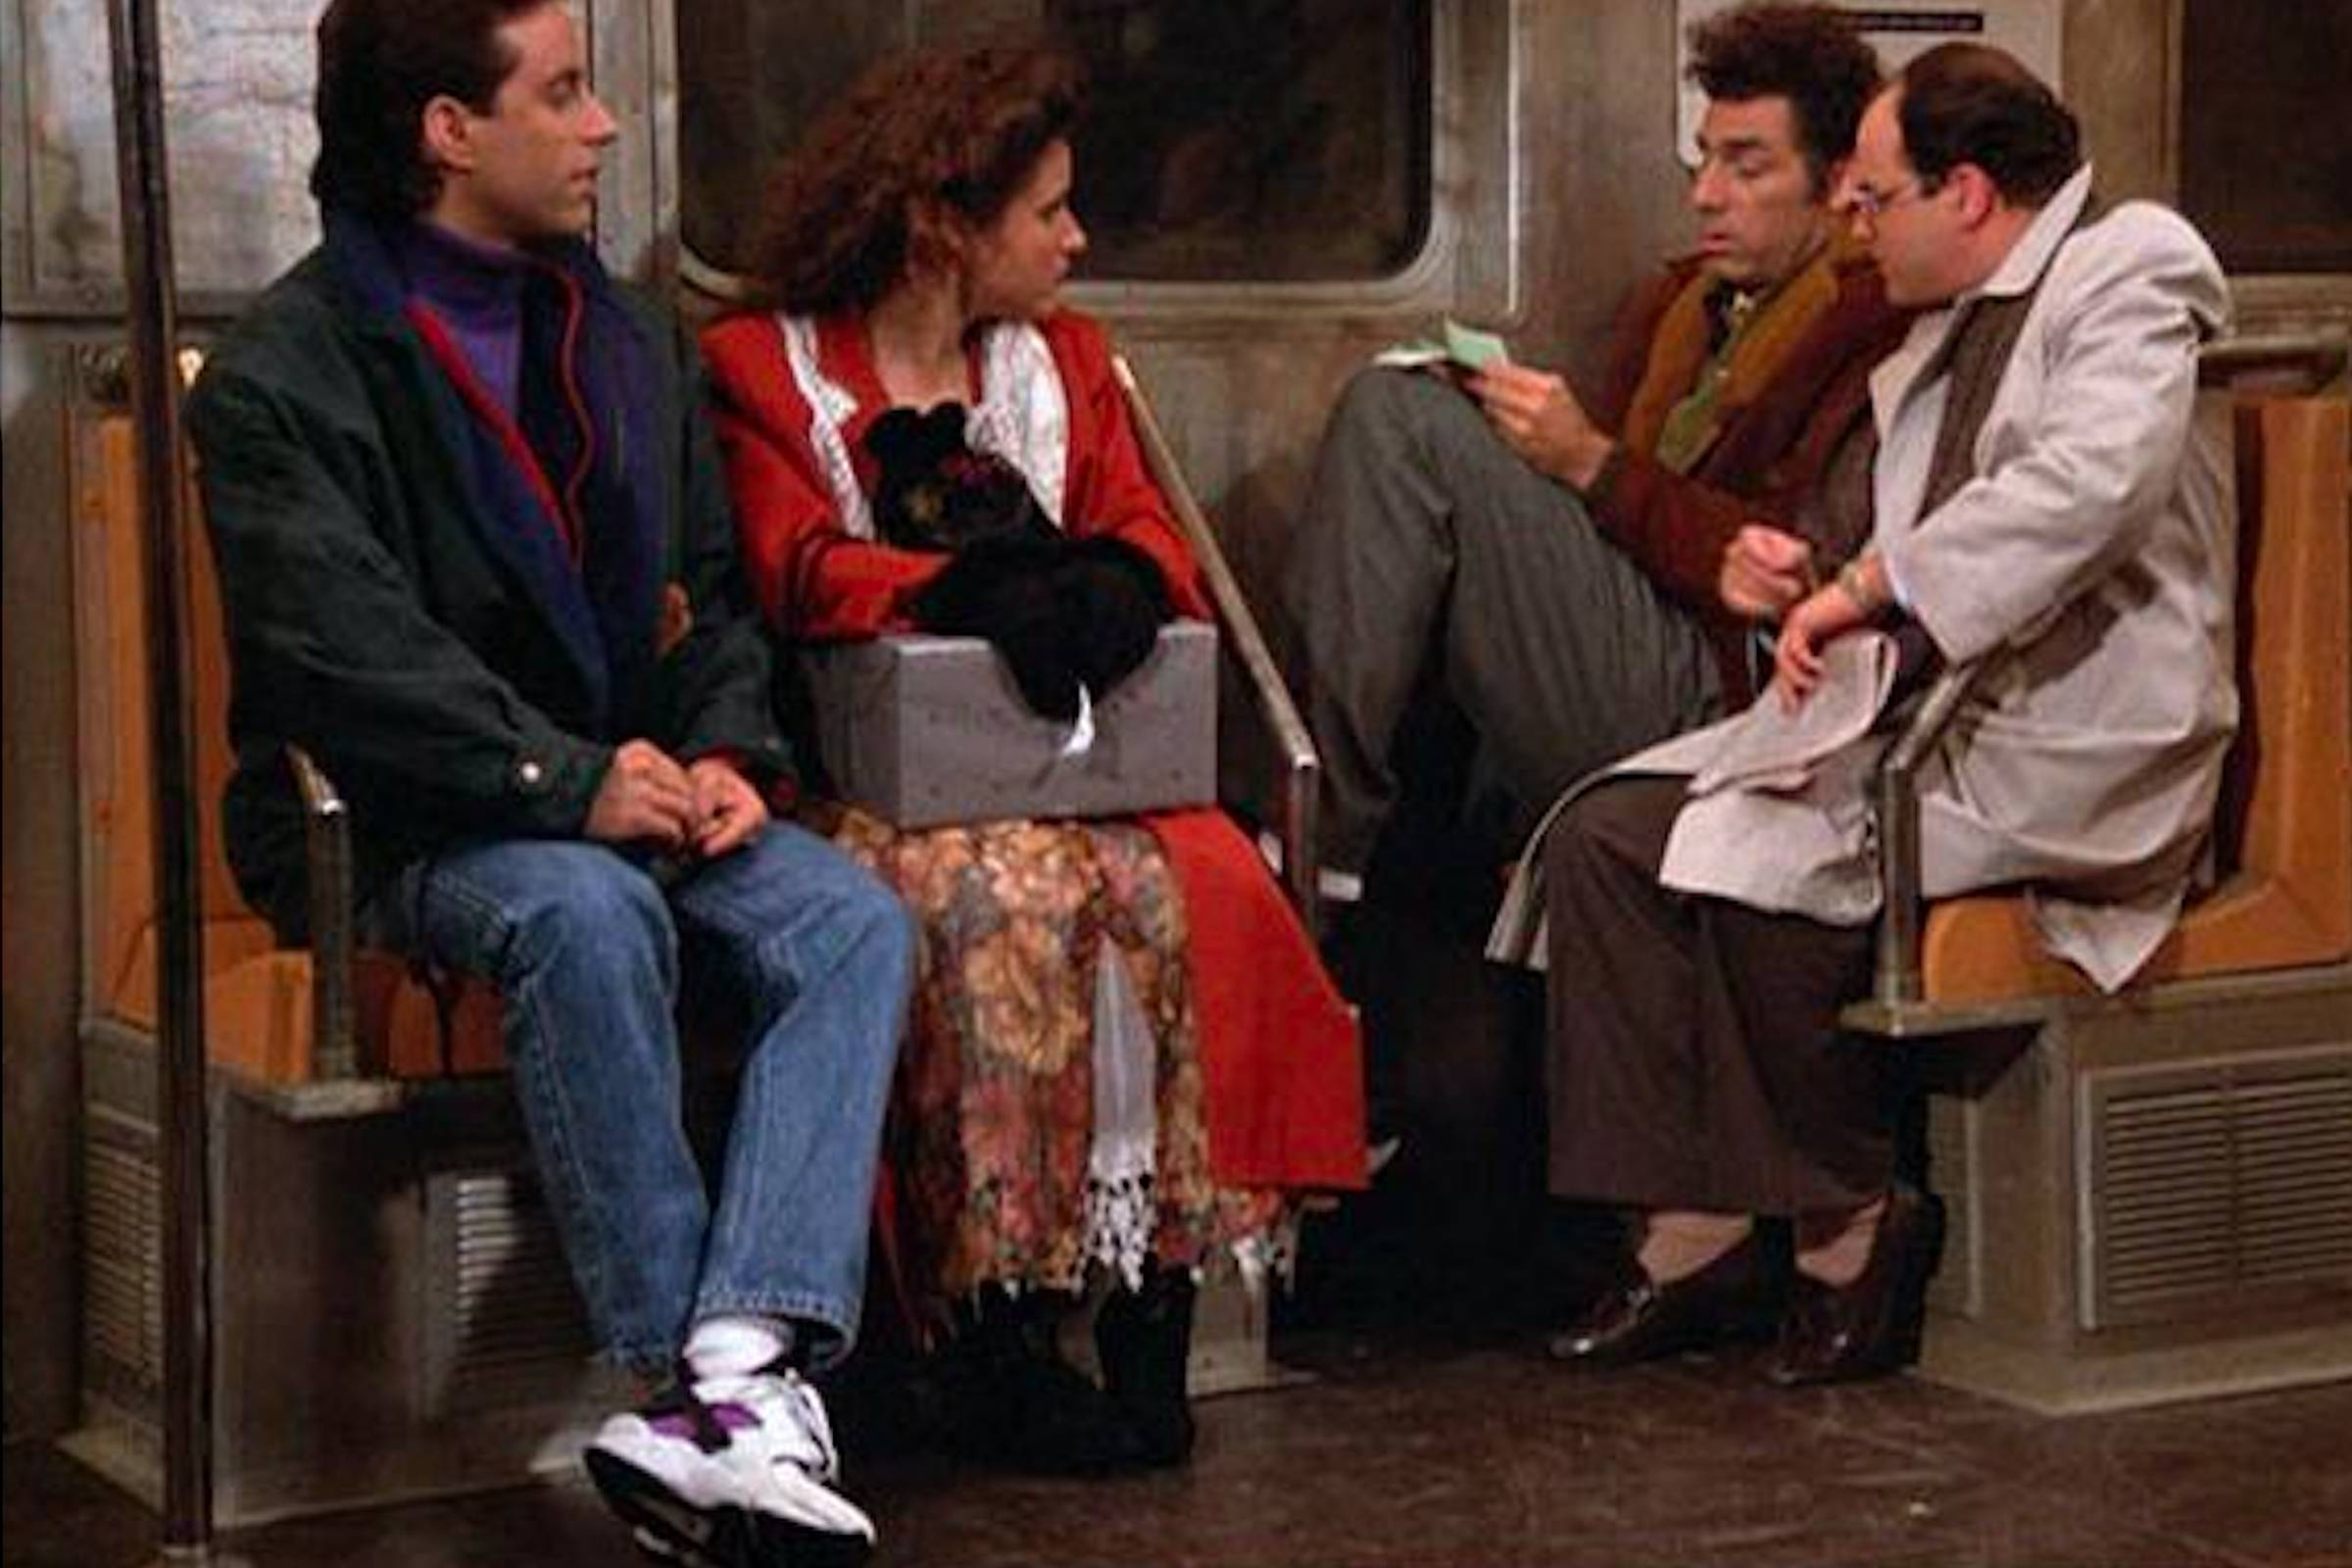 955bb0a9362 At this point, Jerry Seinfeld's sneaker history is well documented. While  not a sneakerhead by today's standards, no one liked Huaraches or Air Tech  ...